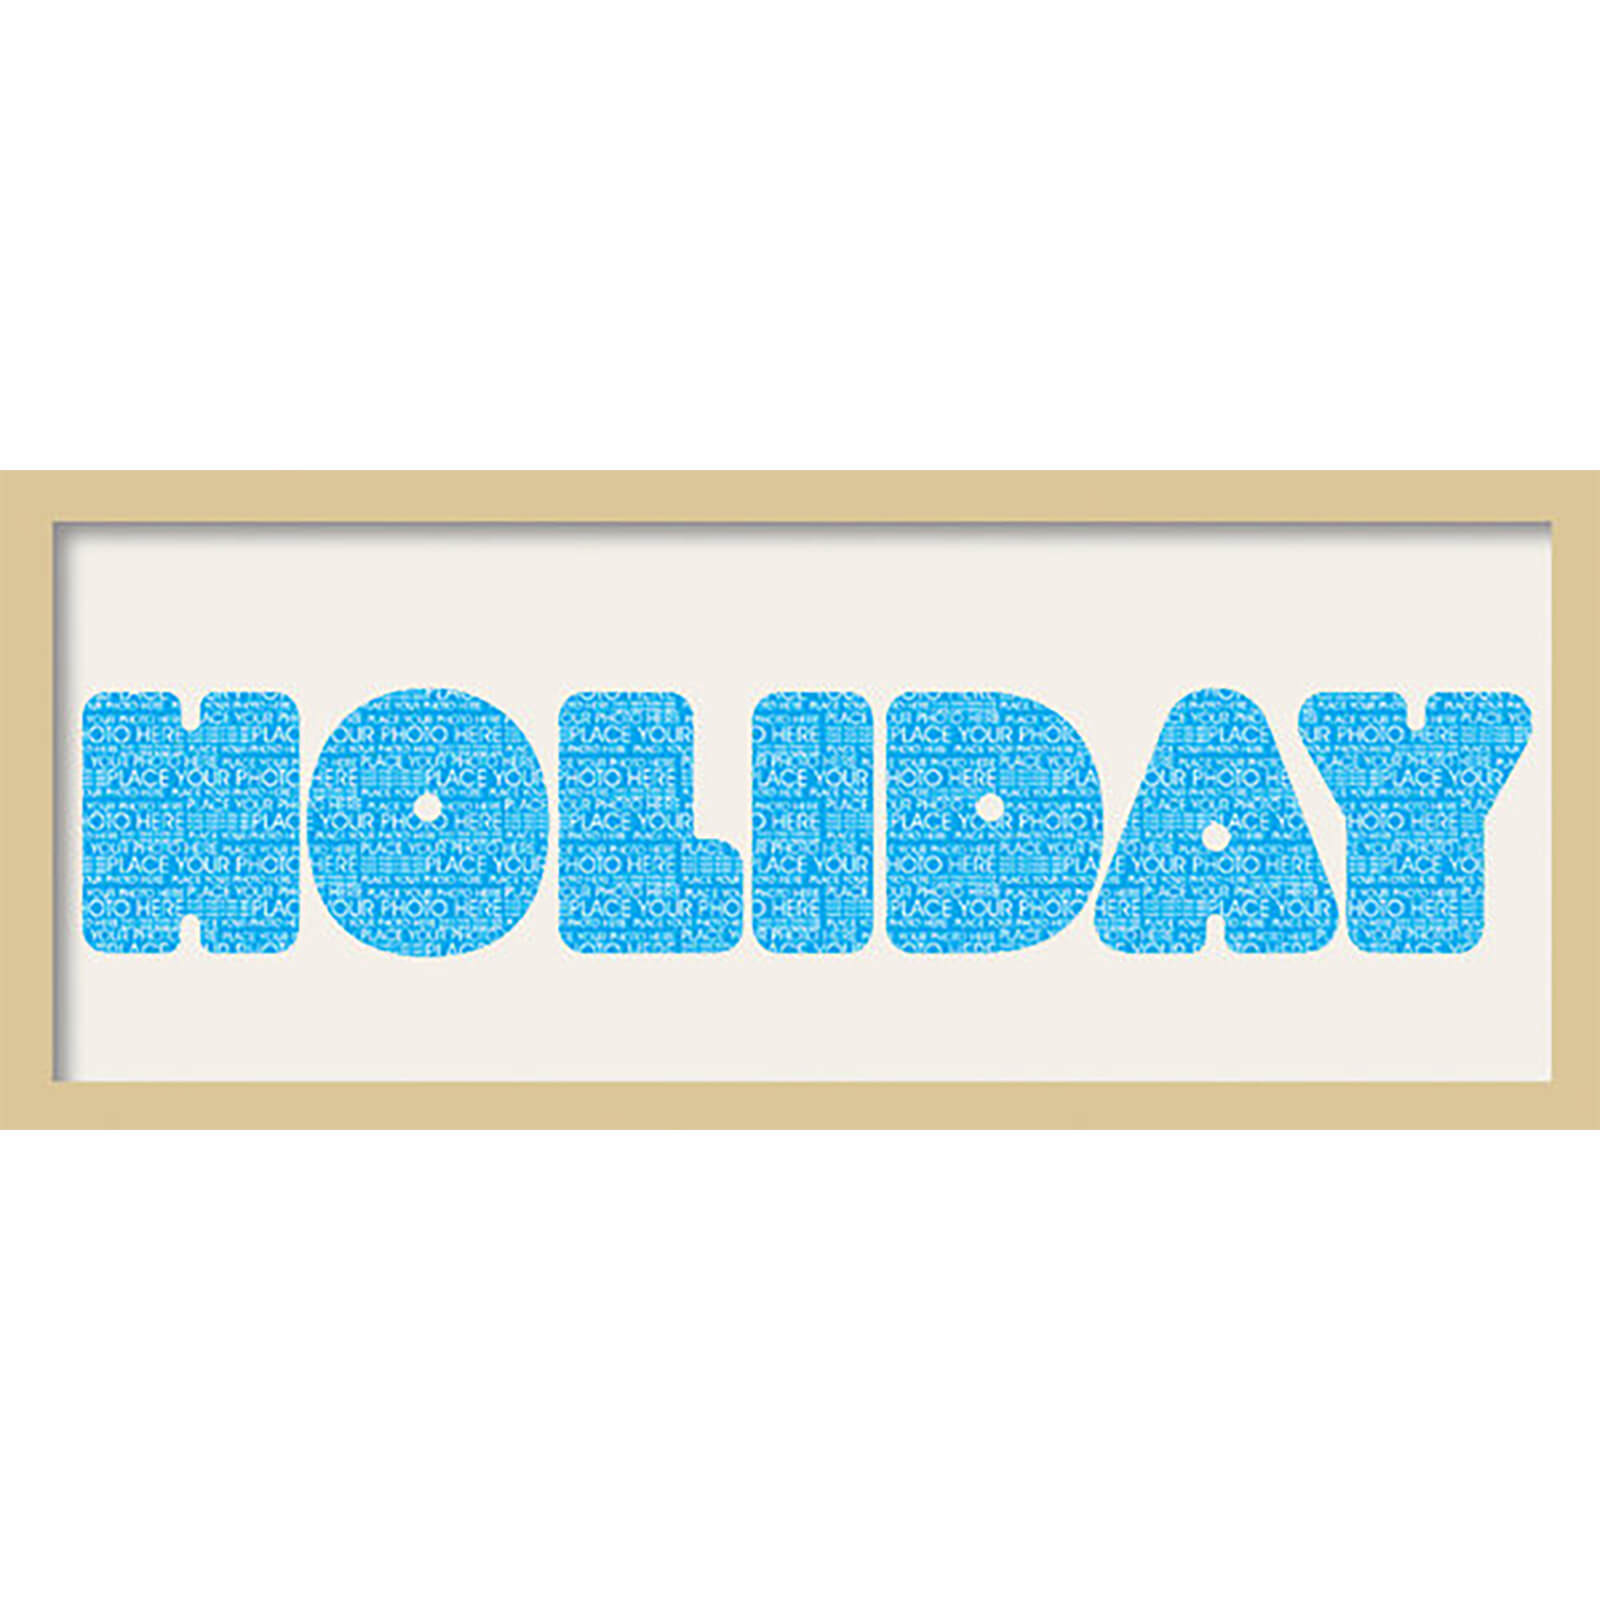 "GB Cream Mount Holiday Fatty Font - Framed Mount - 12"""" x 30"""